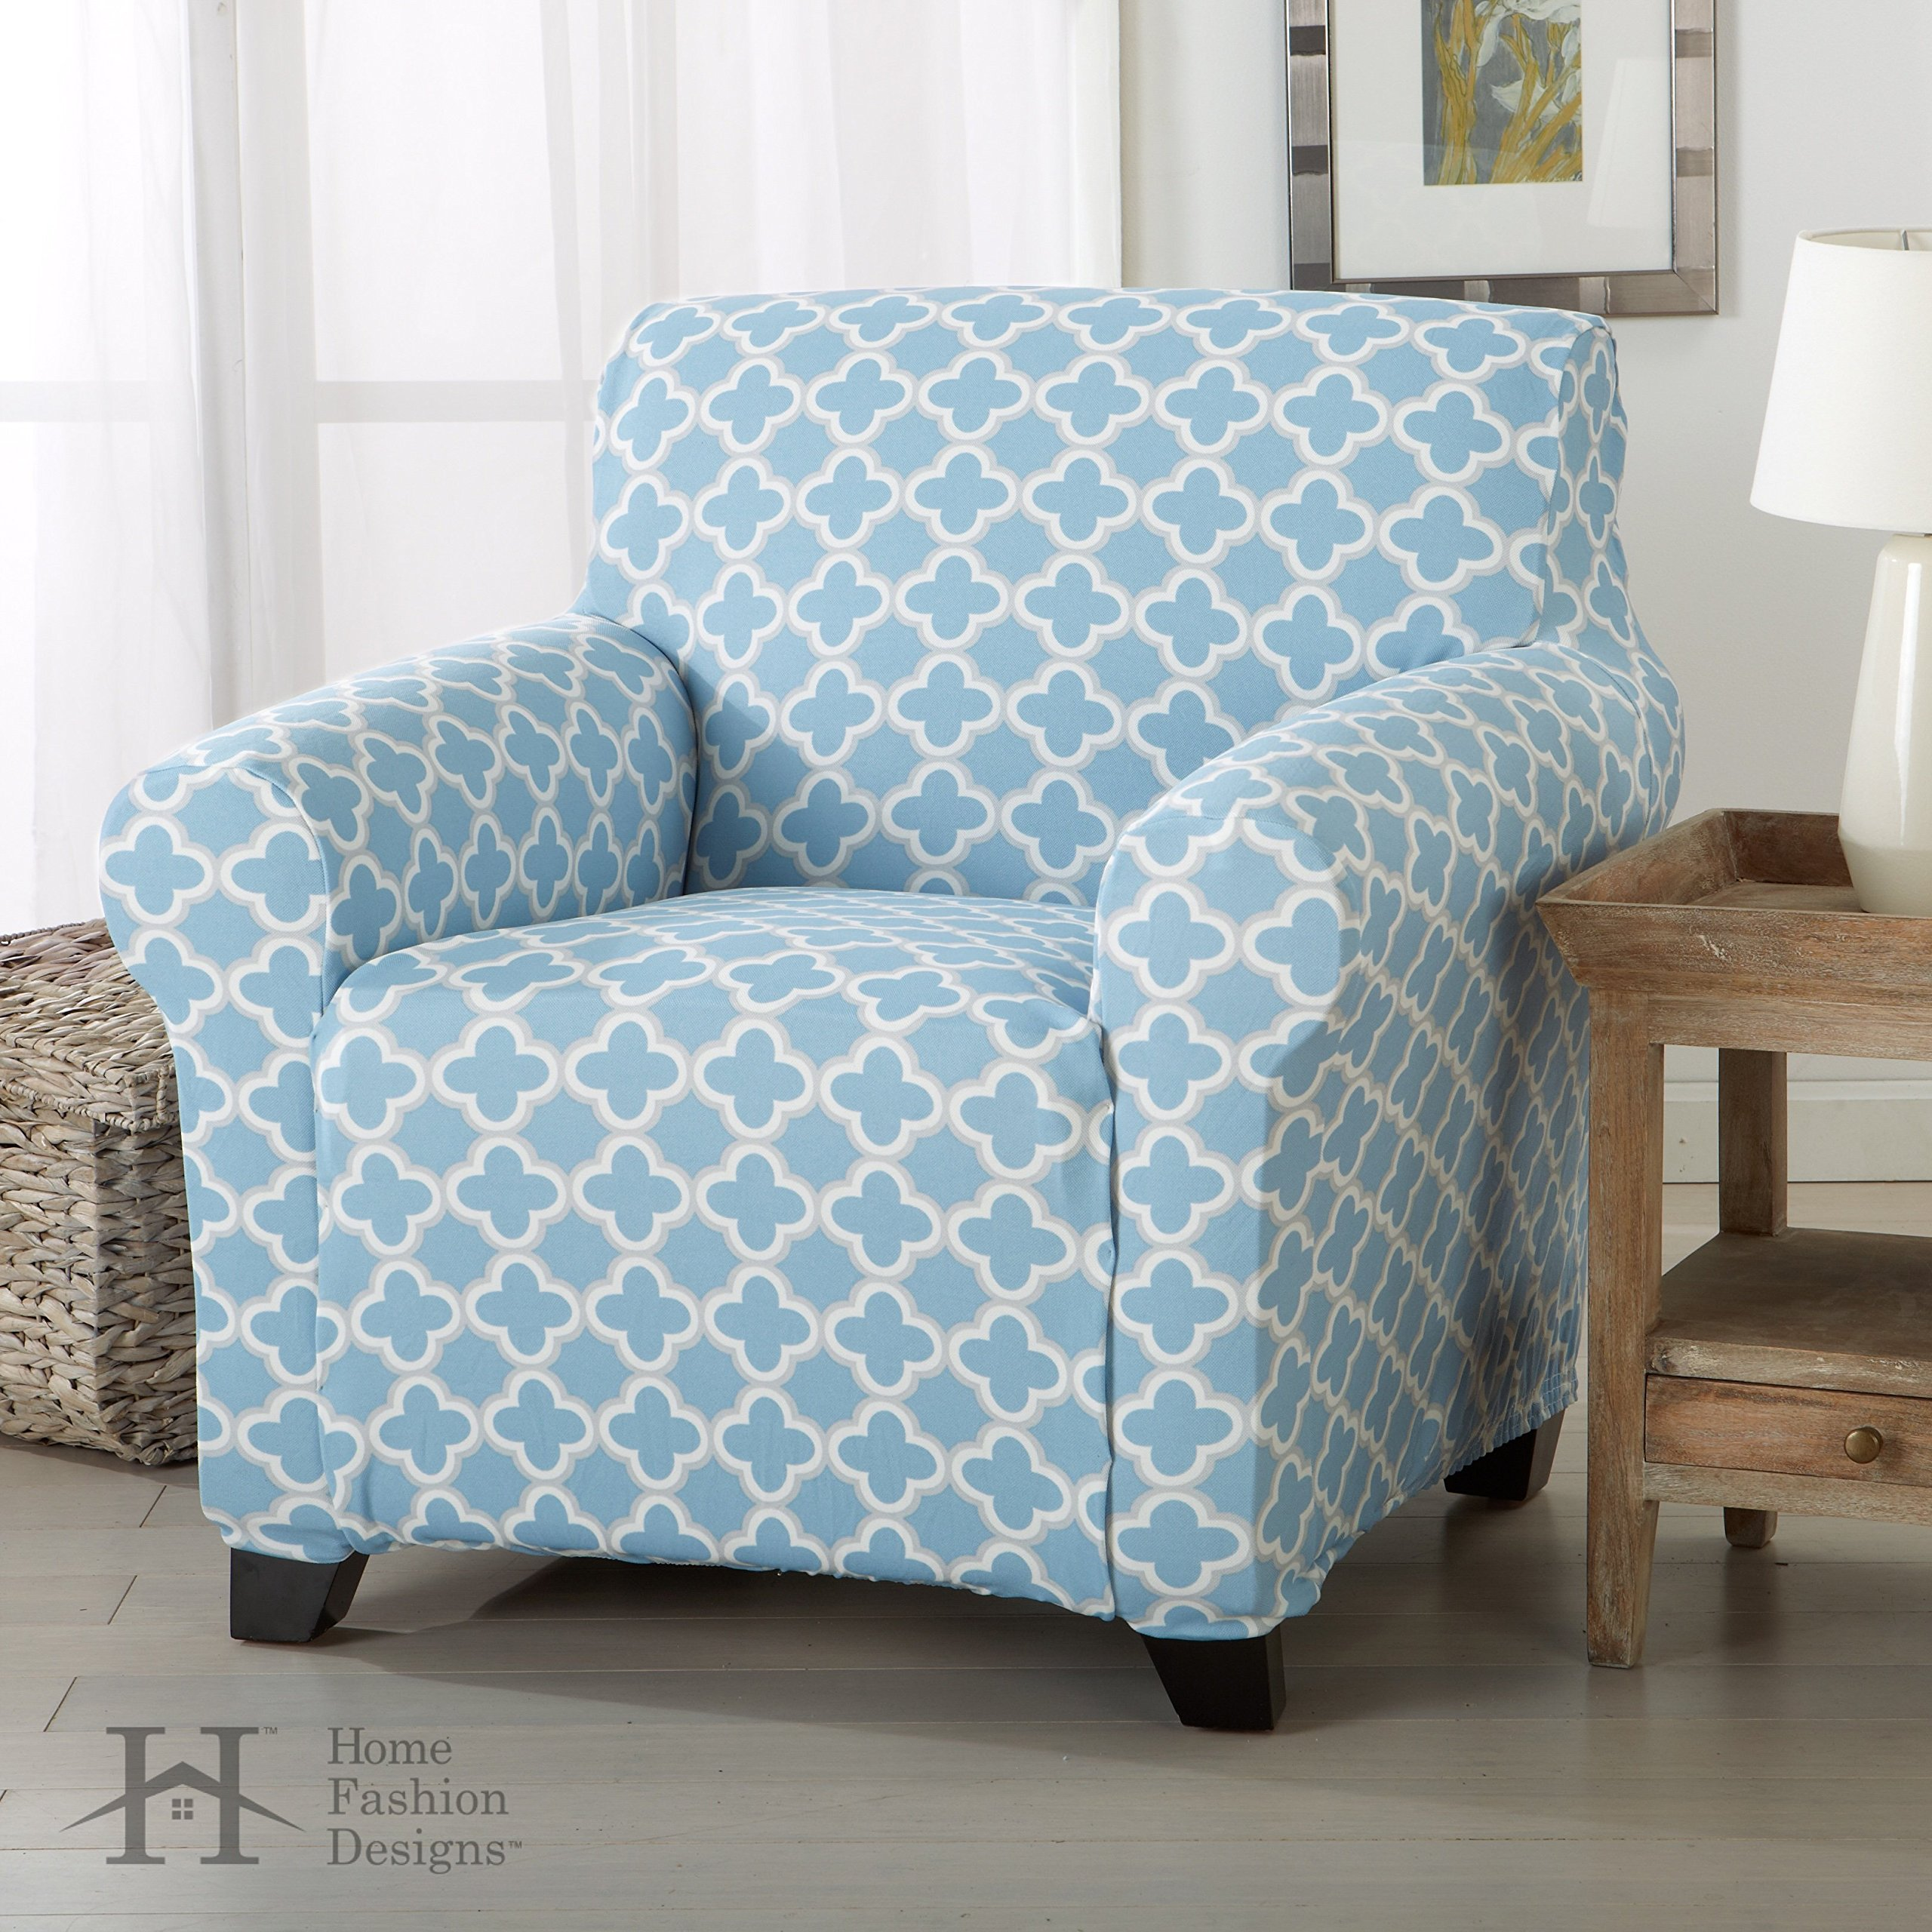 Home Fashion Designs Form Fit, Slip Resistant, Stylish Furniture Cover/Protector Featuring Lightweight Stretch Twill Fabric. Brenna Collection Basic Strapless Slipcover. By Brand. (Chair, Sky Blue)